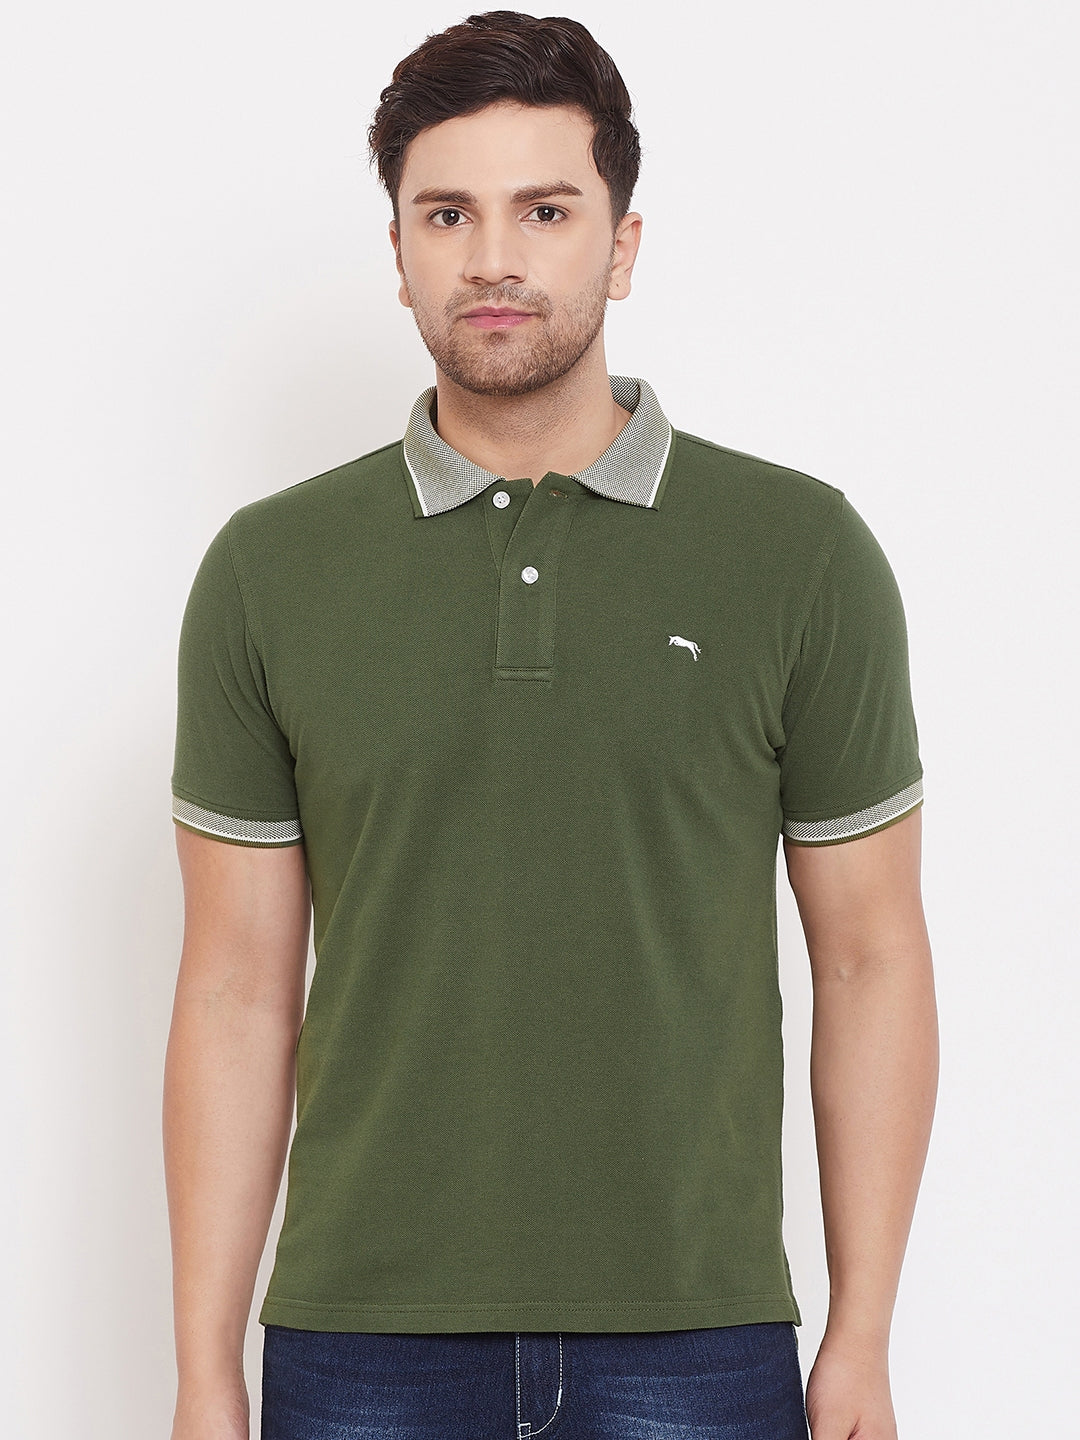 JUMP USA Men Solid Olive Polo T-shirt